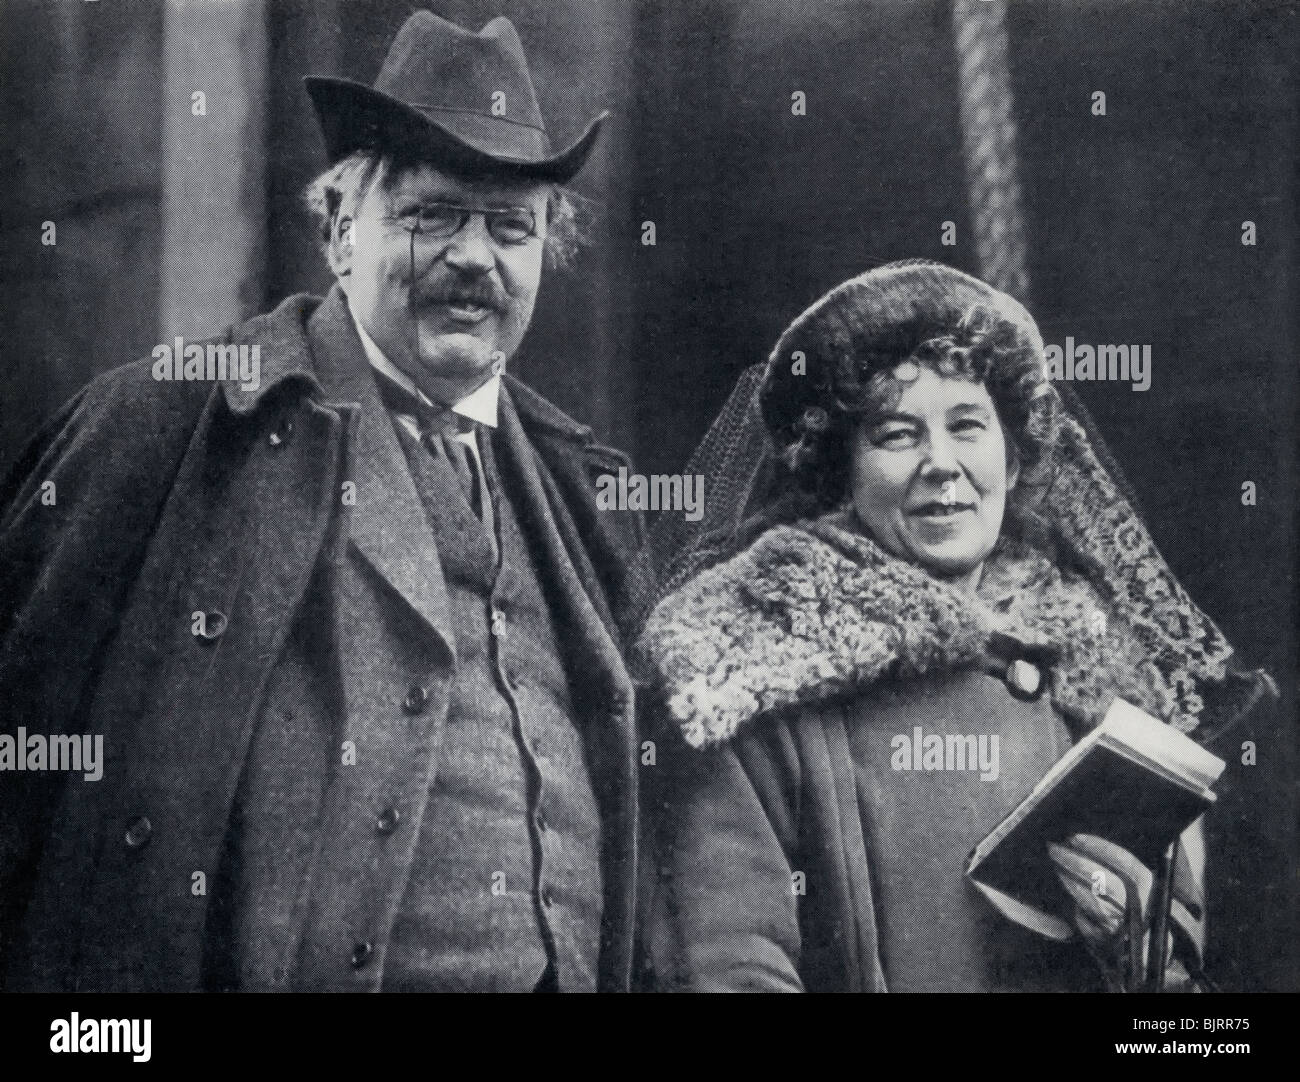 G. K. Chesterton 1874 - 1936. English author, seen here with his wife Frances Blogg. - Stock Image